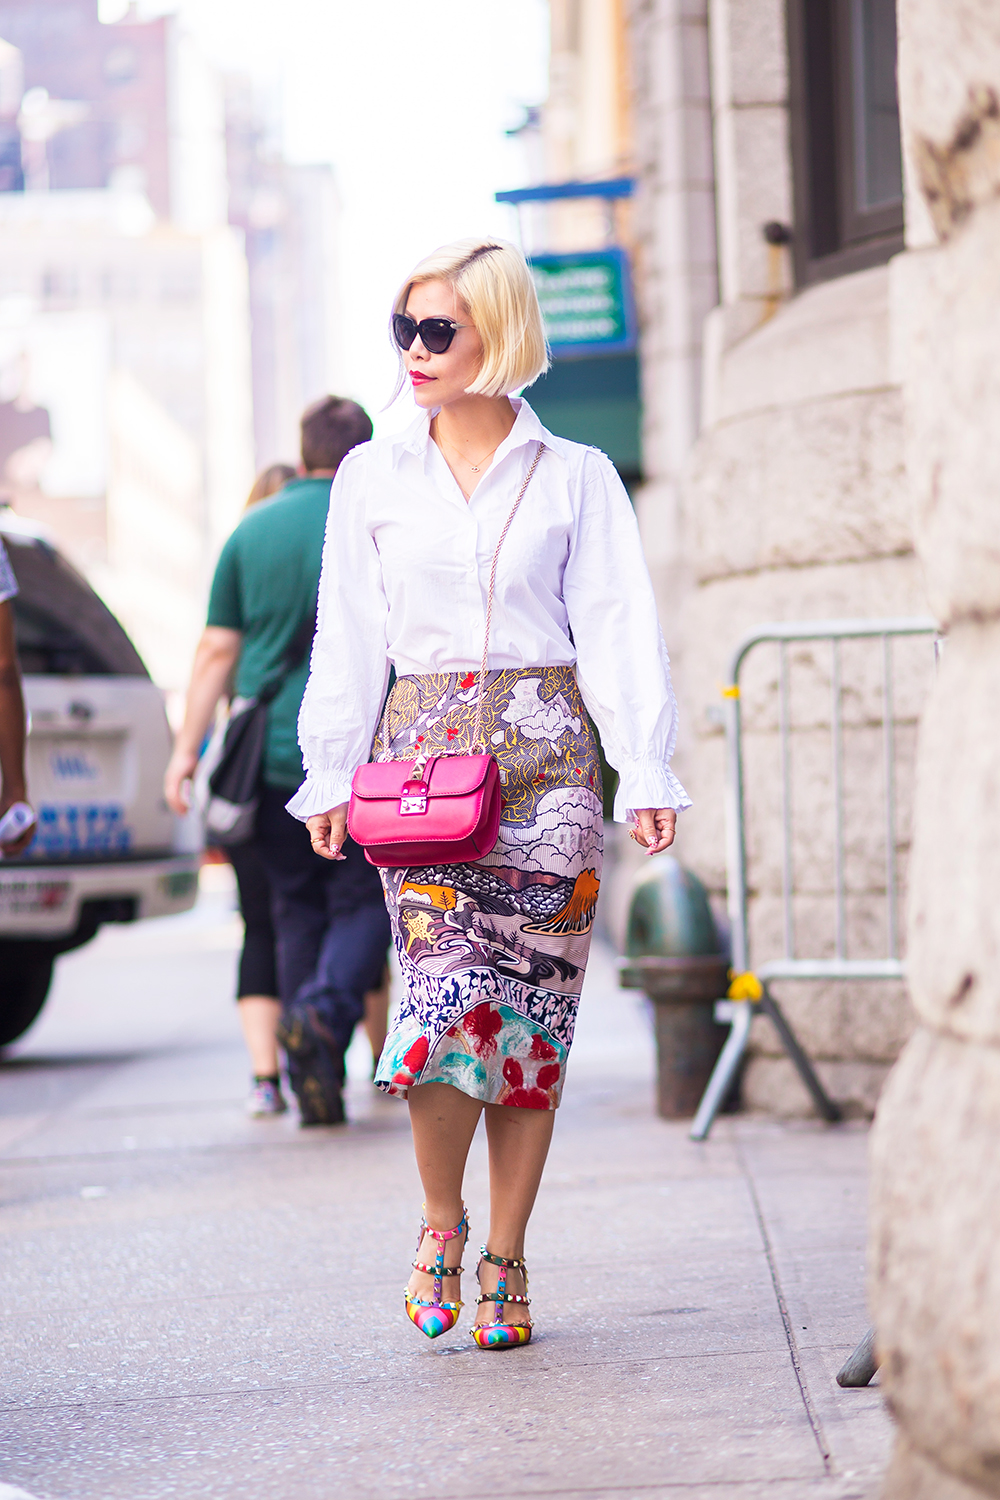 New York Fashion Week 2015- Street Style- Crystal Phuong x Few Moda